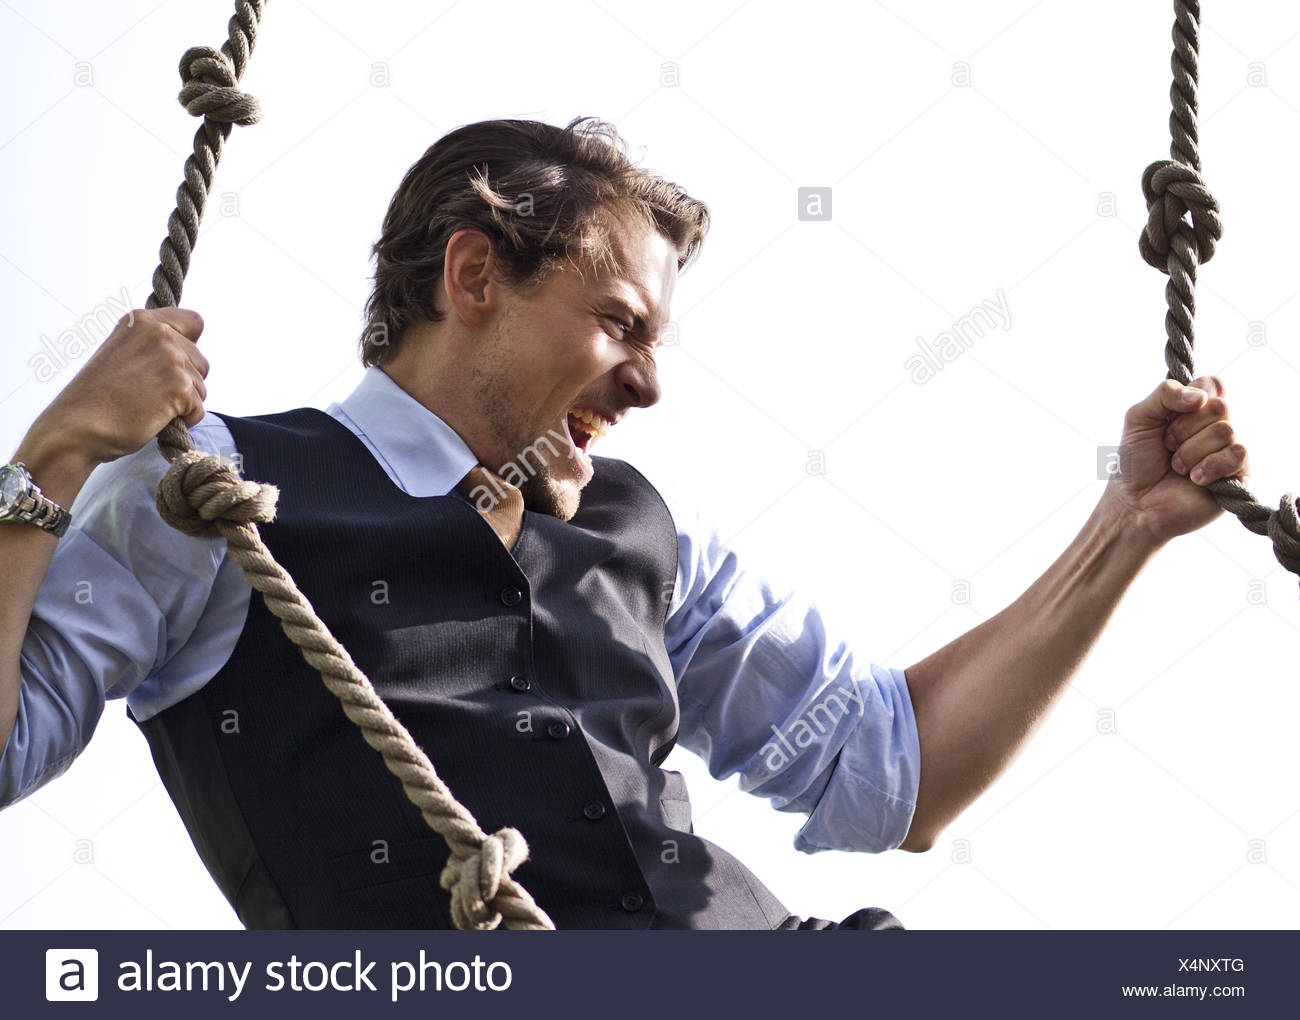 Strong, able businessman climbing ropes - Stock Image